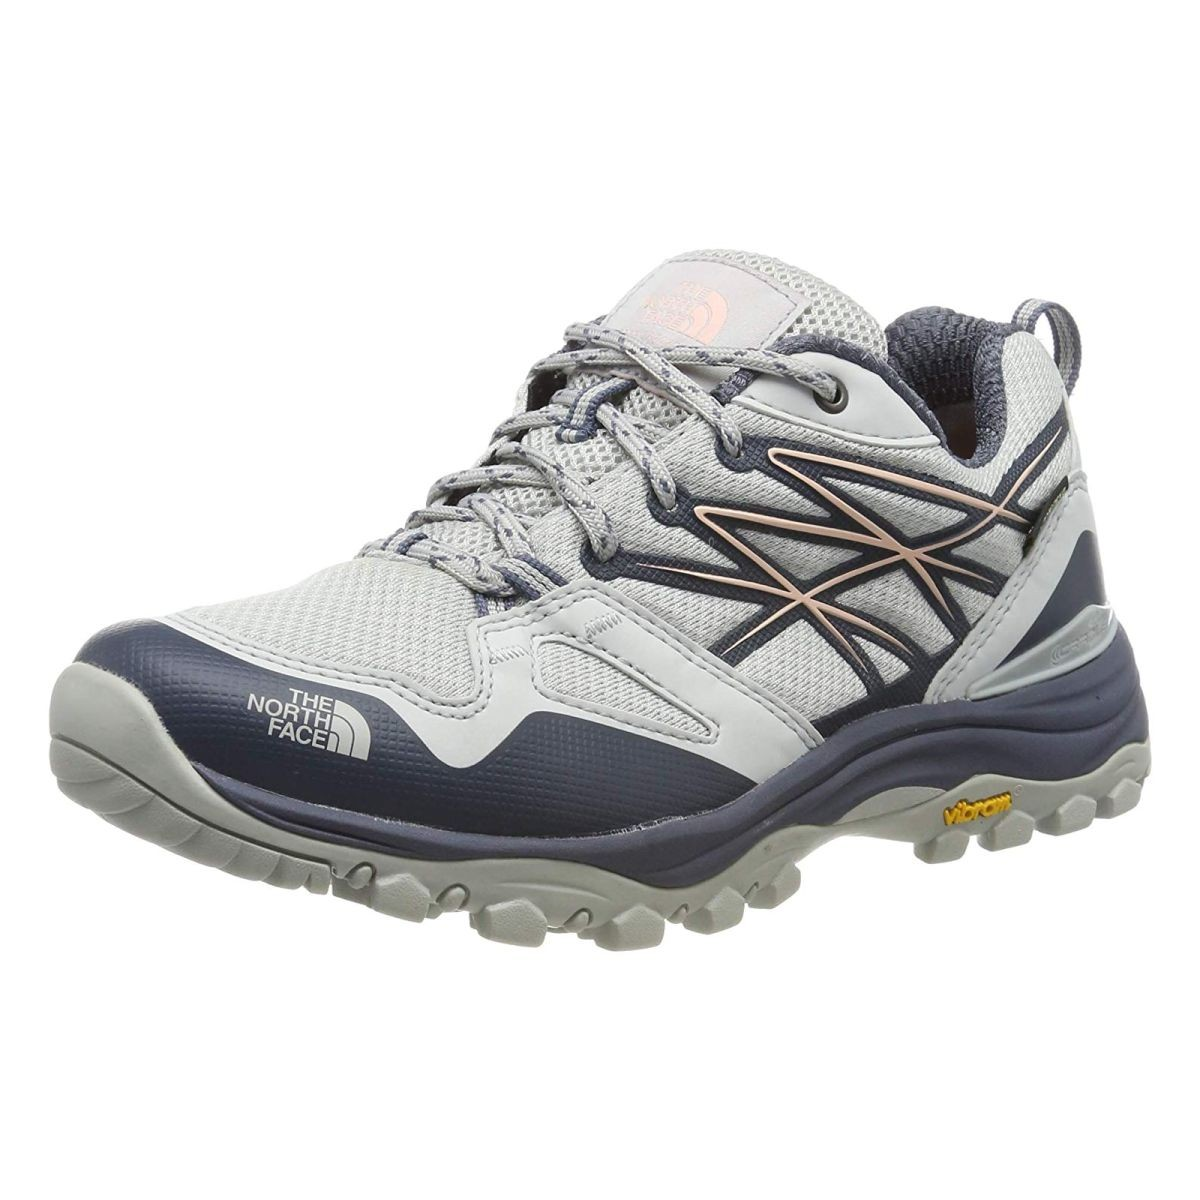 THE NORTH FACE - W HEDGEHG FP GTX(EU) - WOMEN